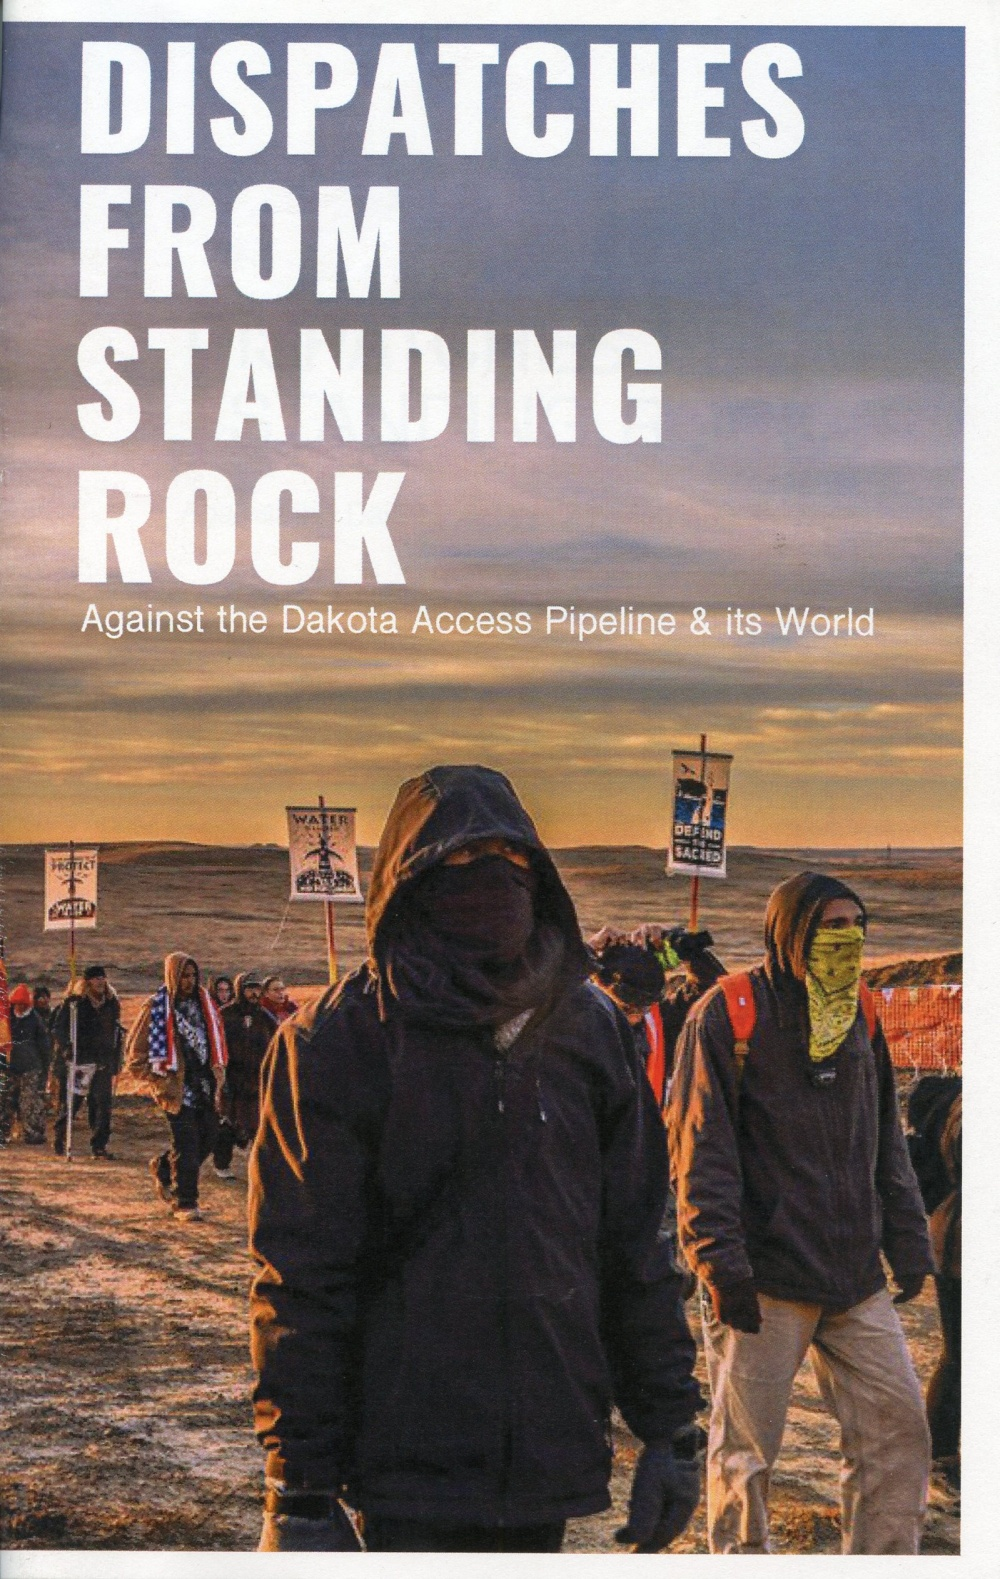 Dispatches from Standing Rock